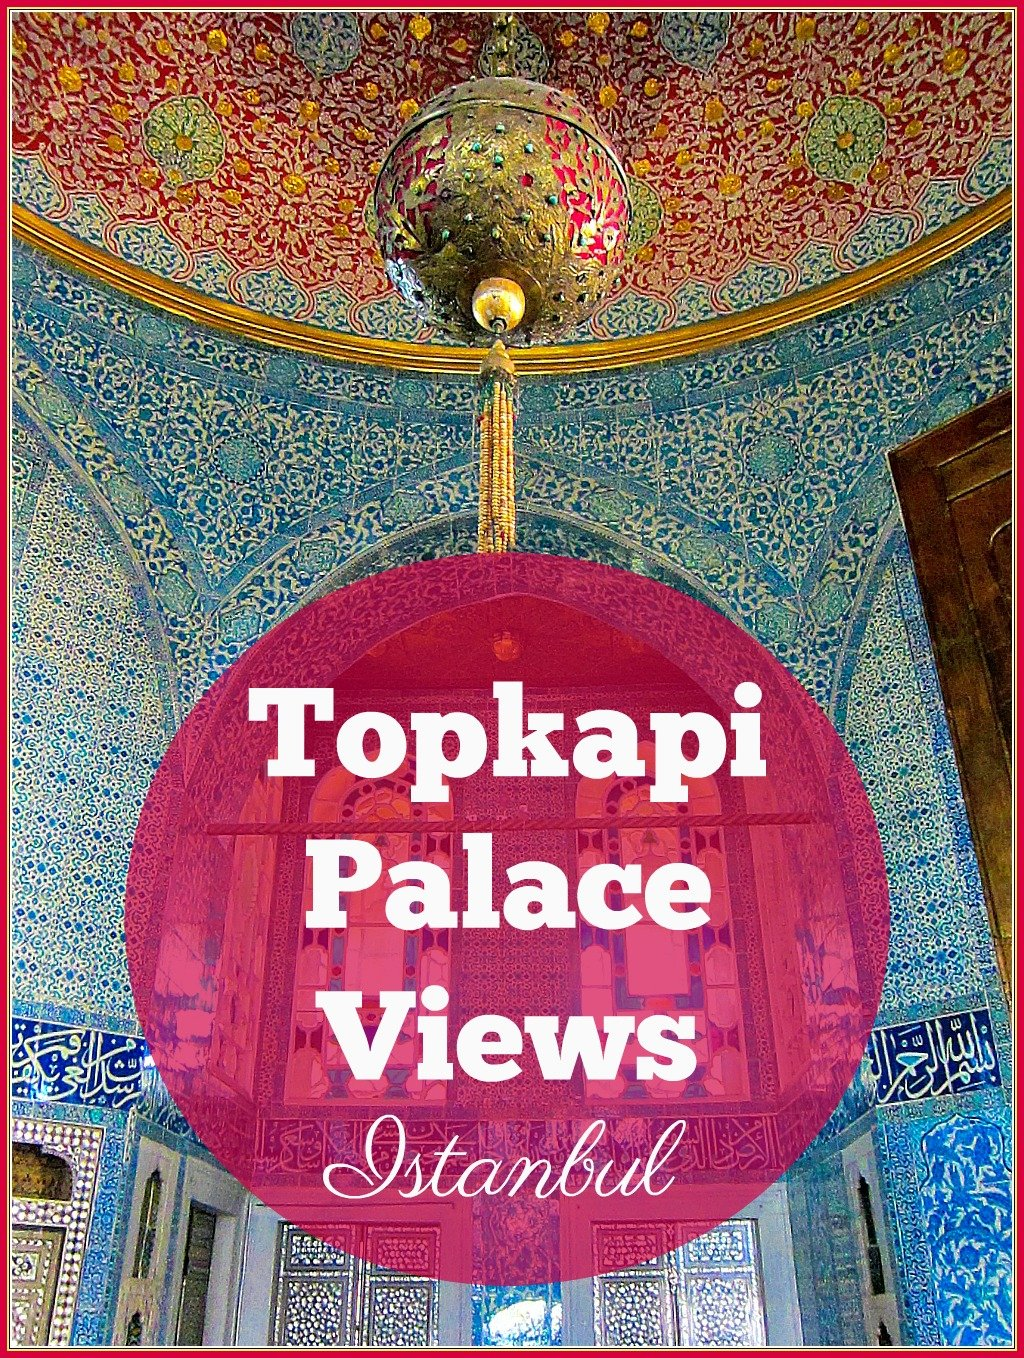 Topkapi Palace Views in Istanbul